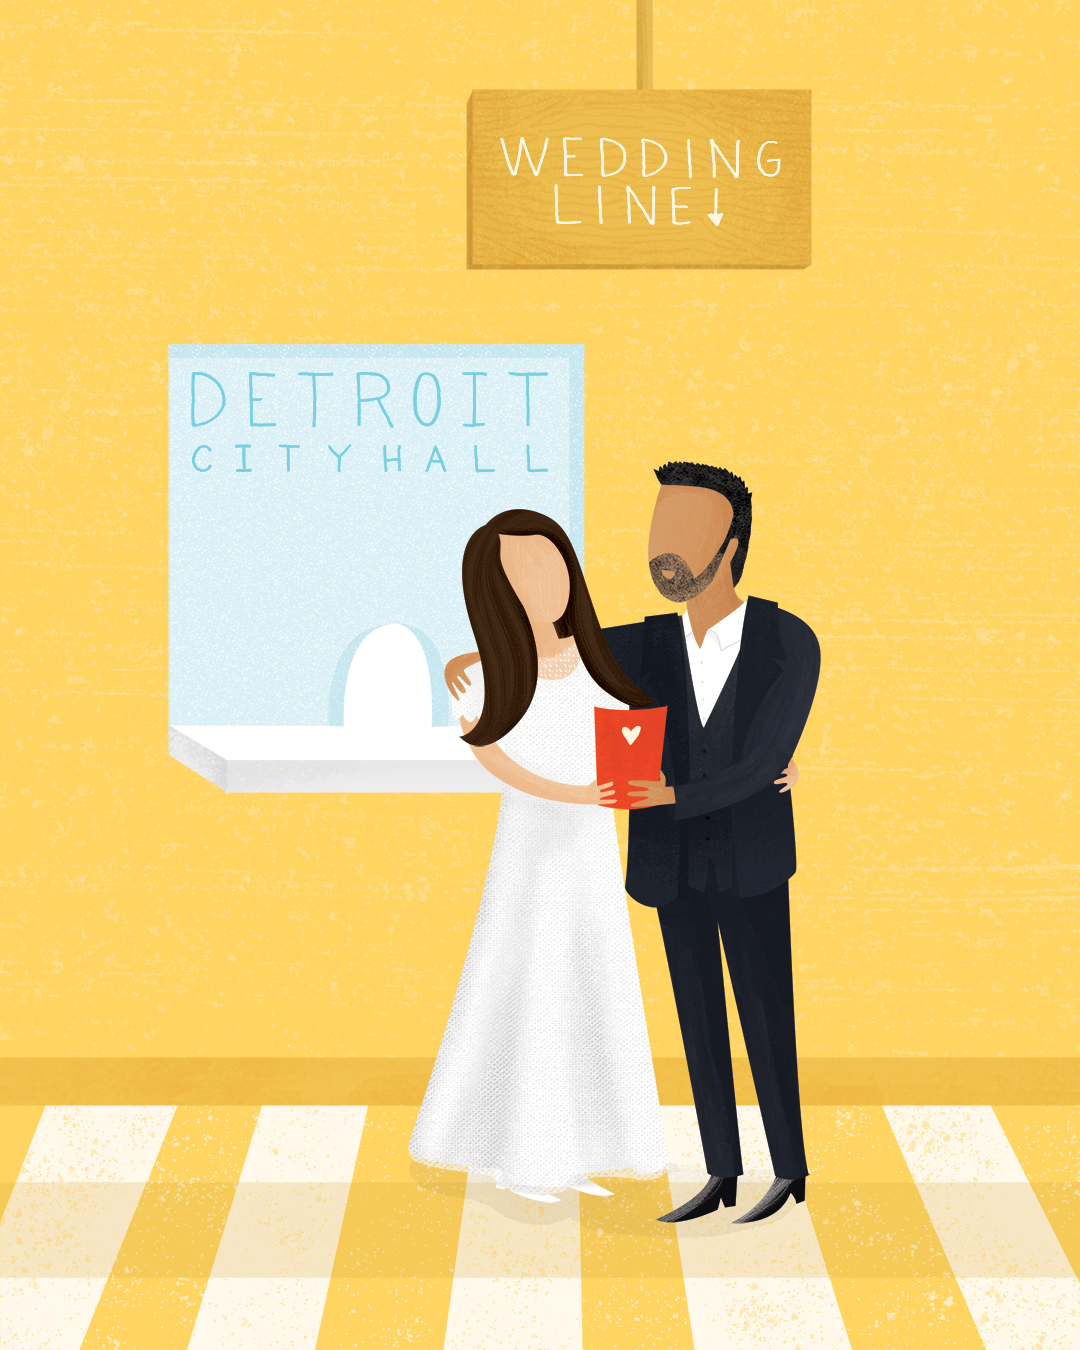 natalie-marion-wedding-portrait-city-hall-illustration.png